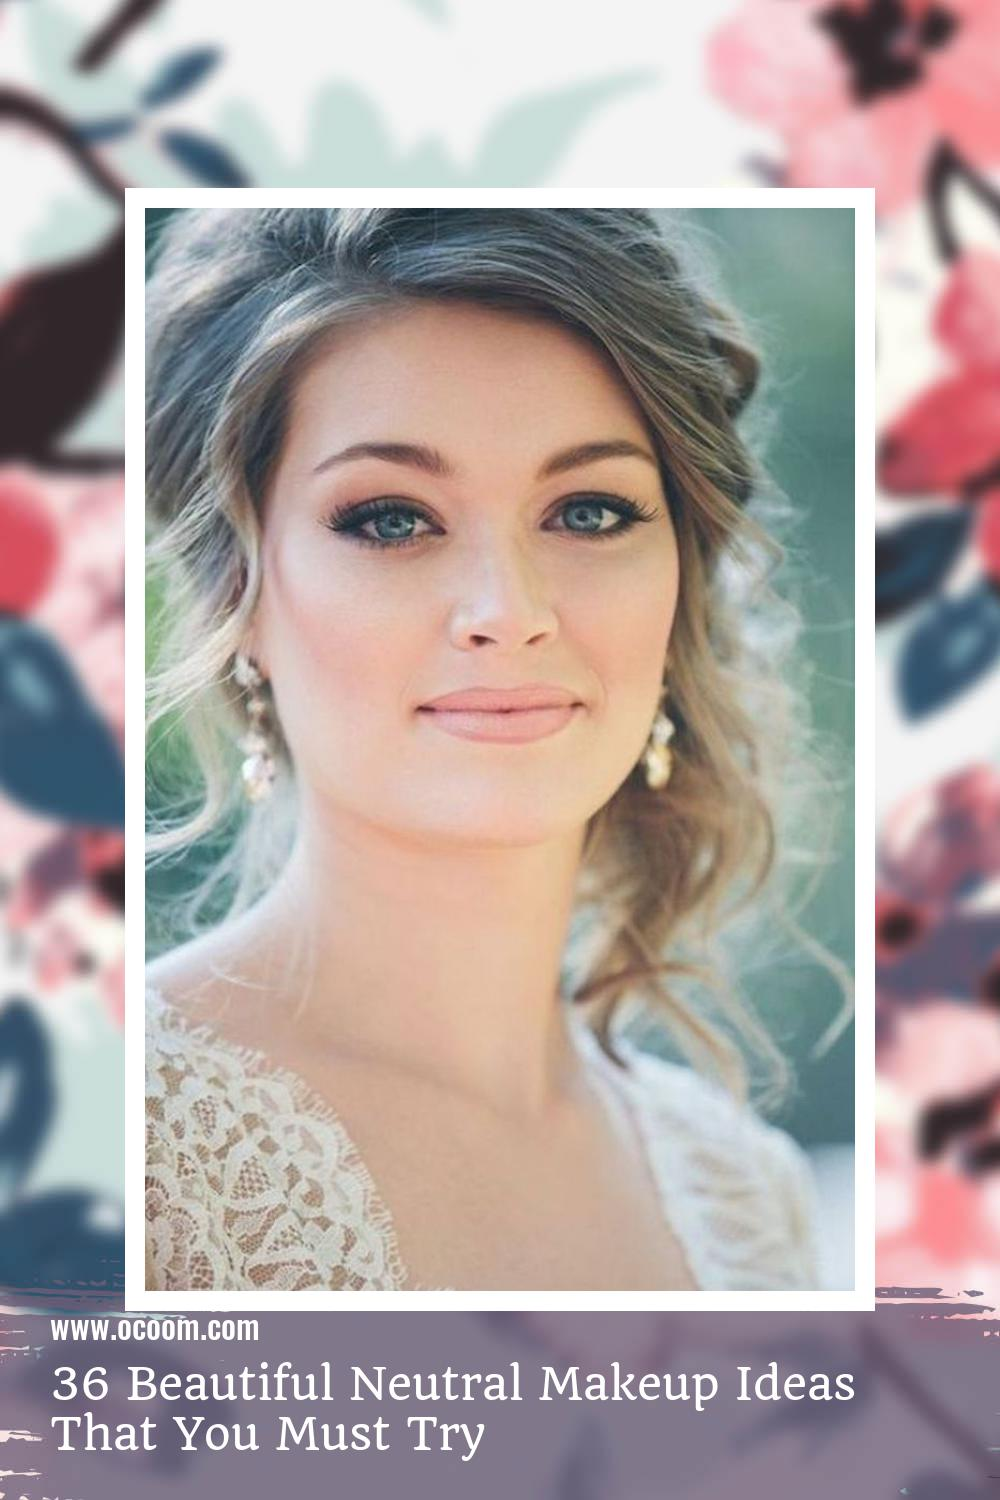 36 Beautiful Neutral Makeup Ideas That You Must Try 15